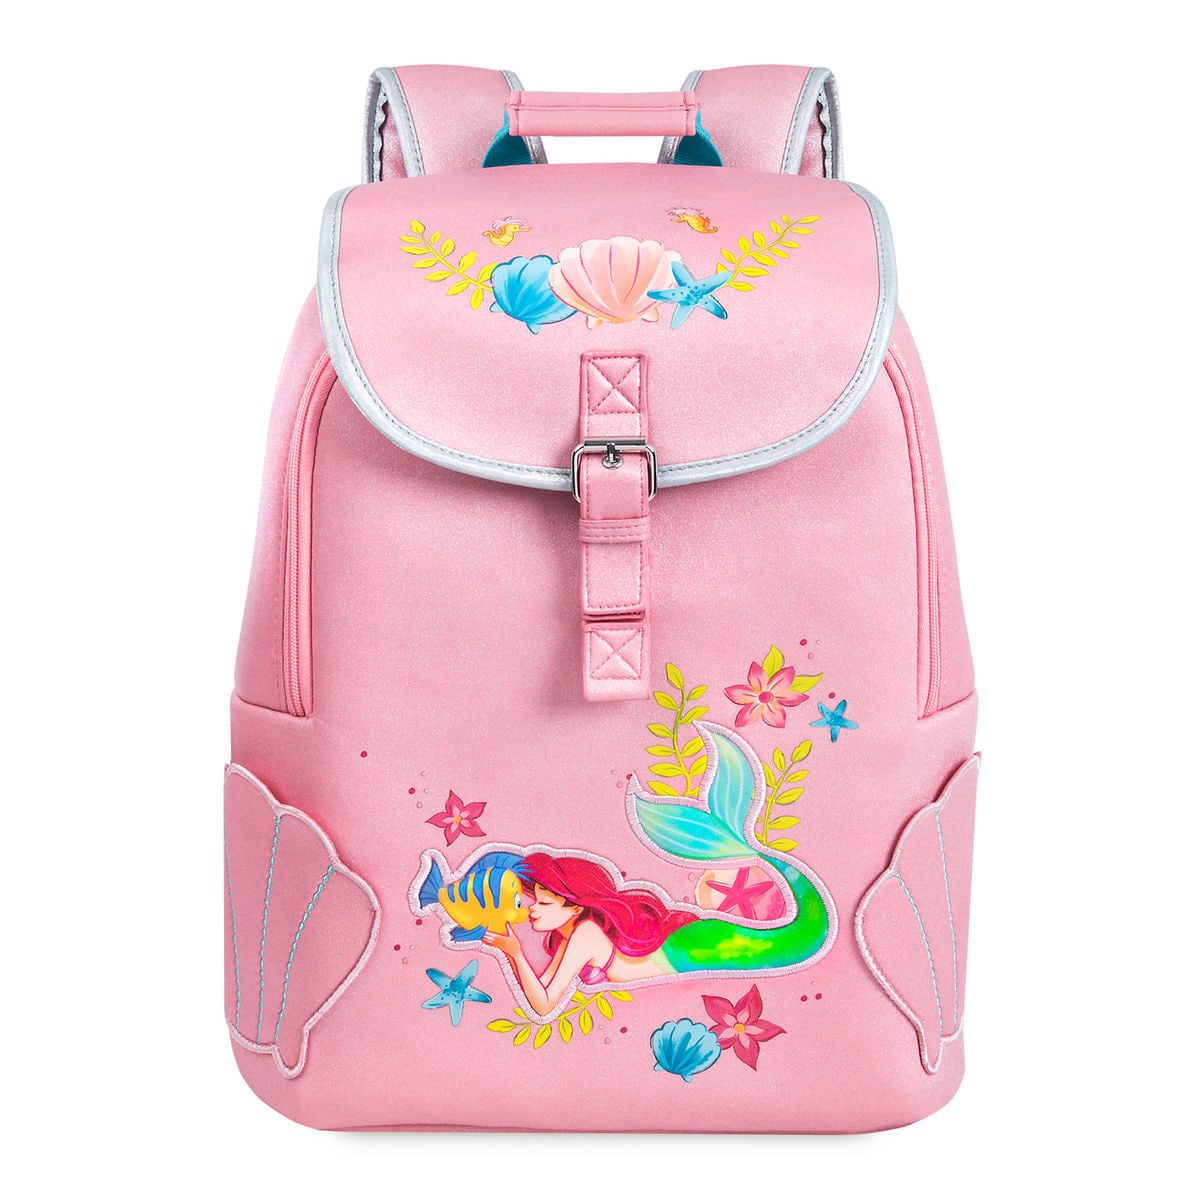 ab596cbcb3c6 Product Image of Ariel Backpack - Personalizable   1